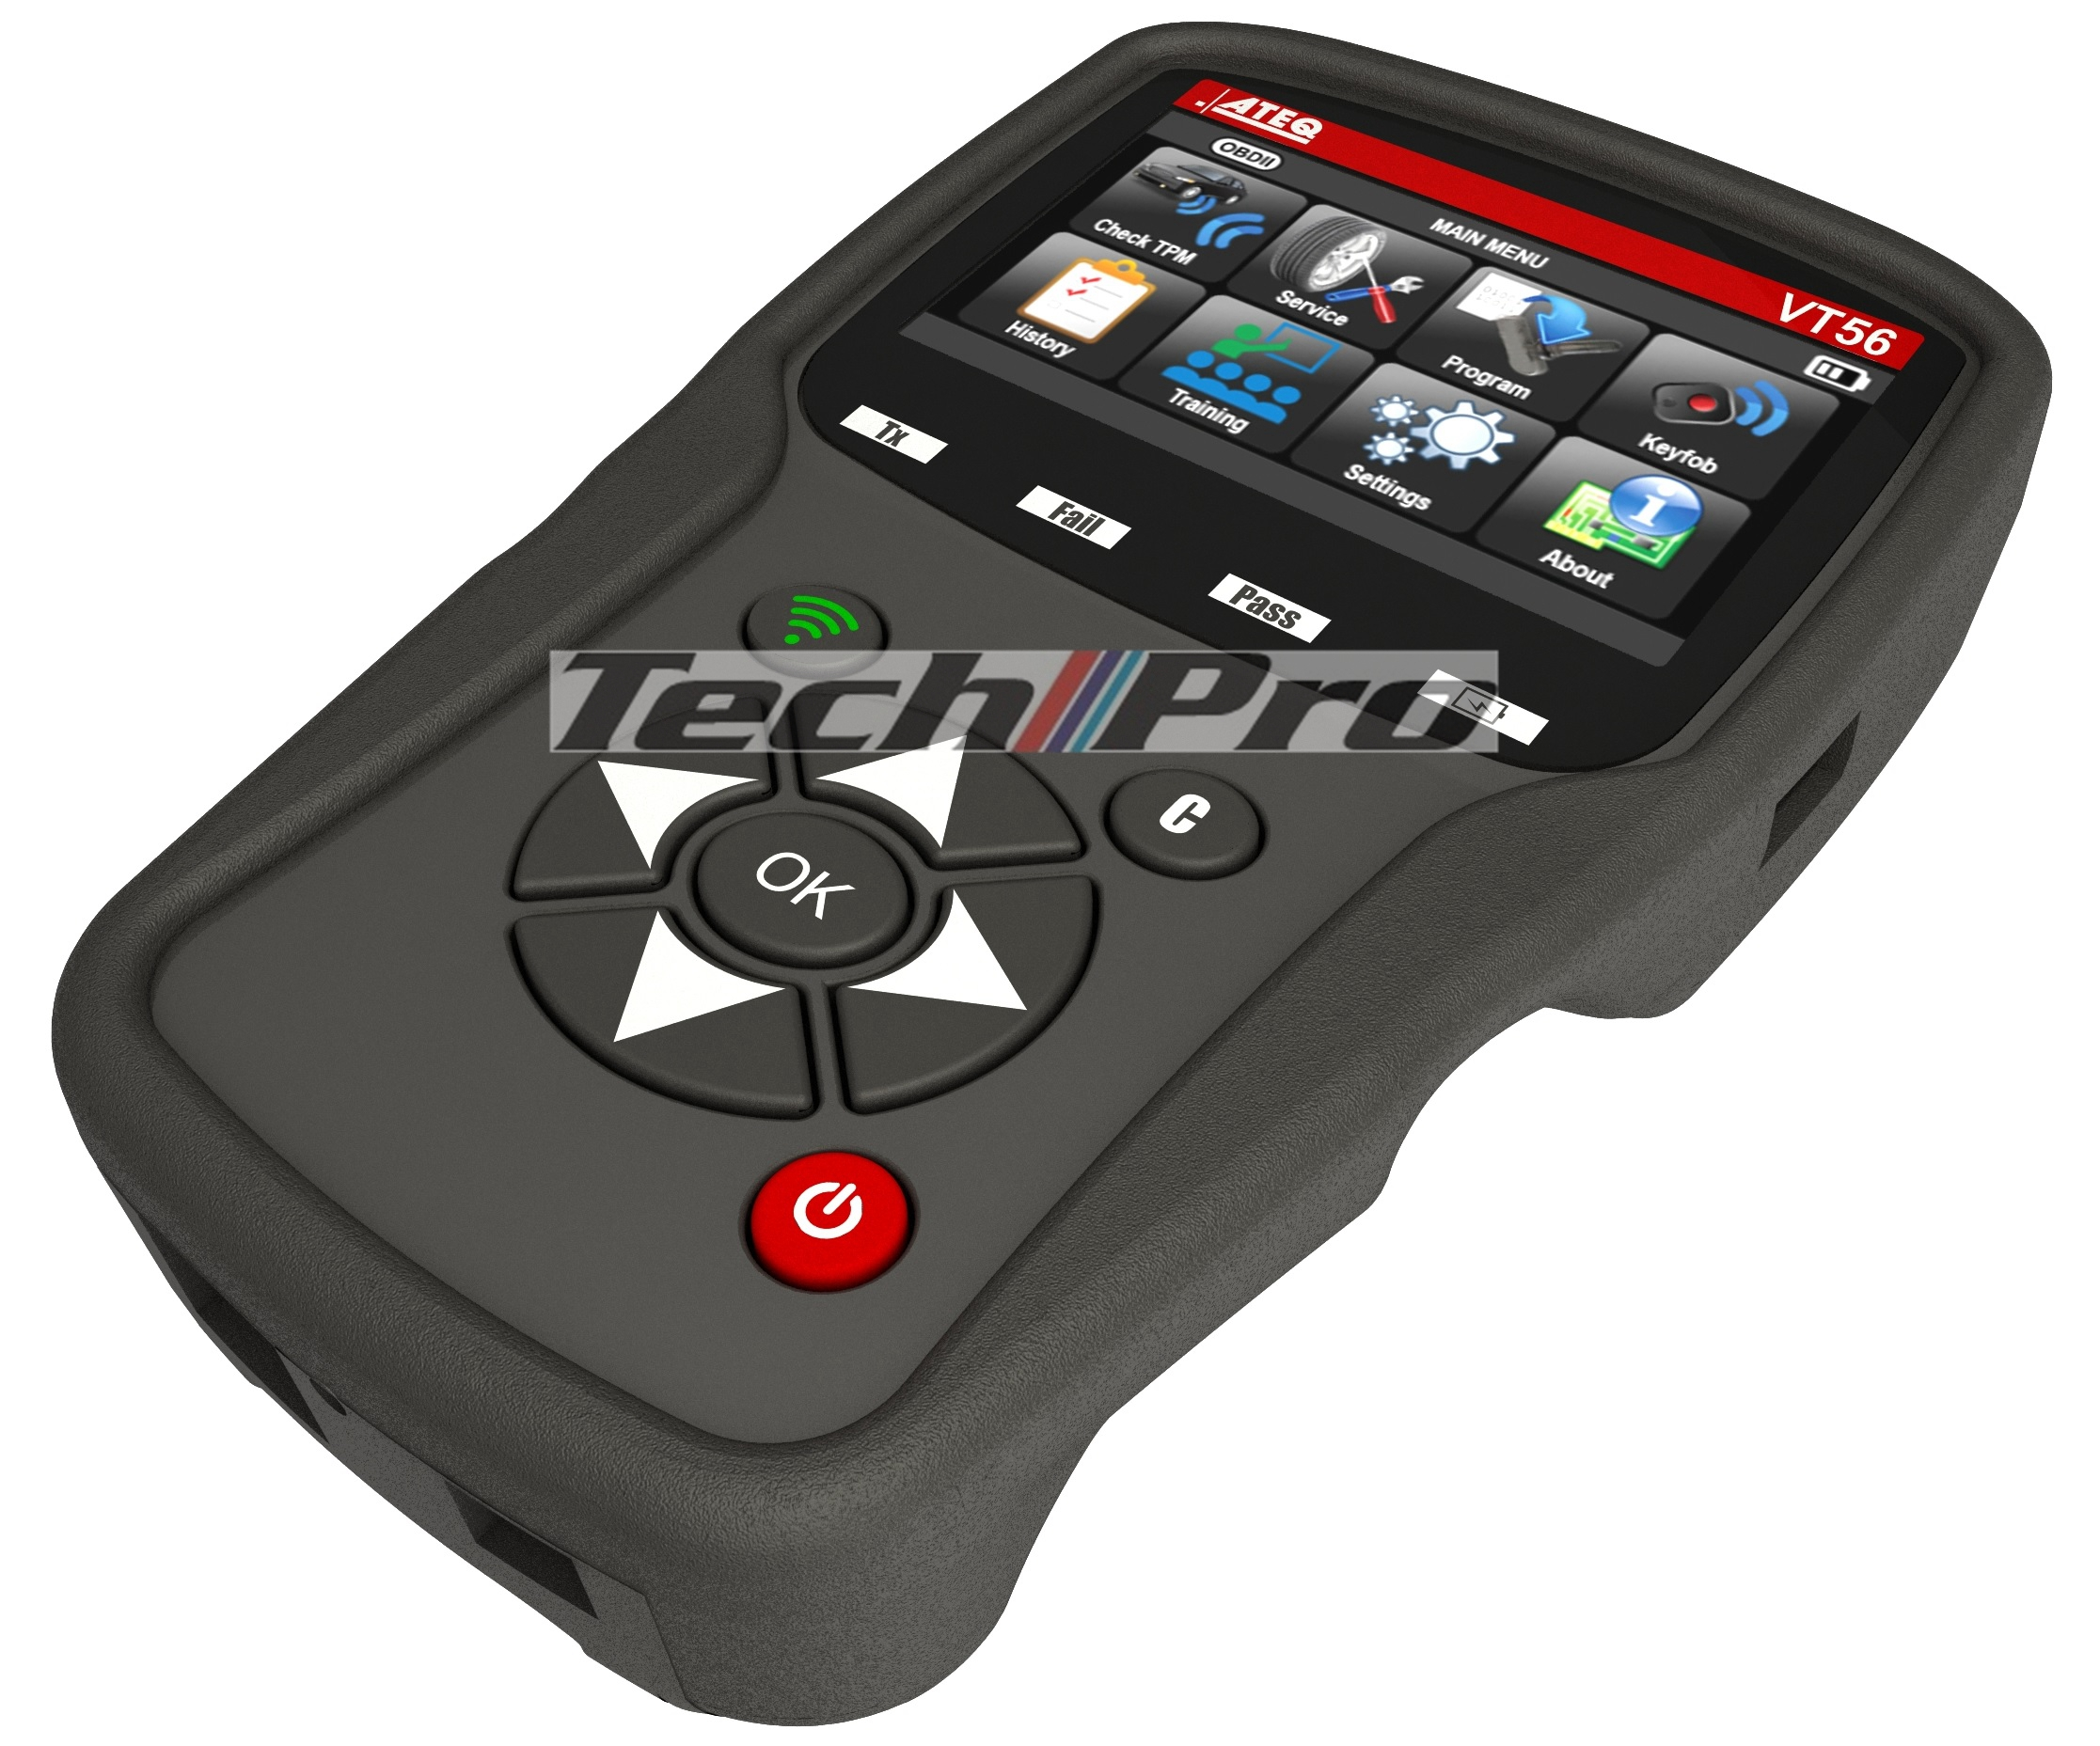 TW-015 ATEQ - VT-56 TPMS Reset / Programming Tool - Click Image to Close